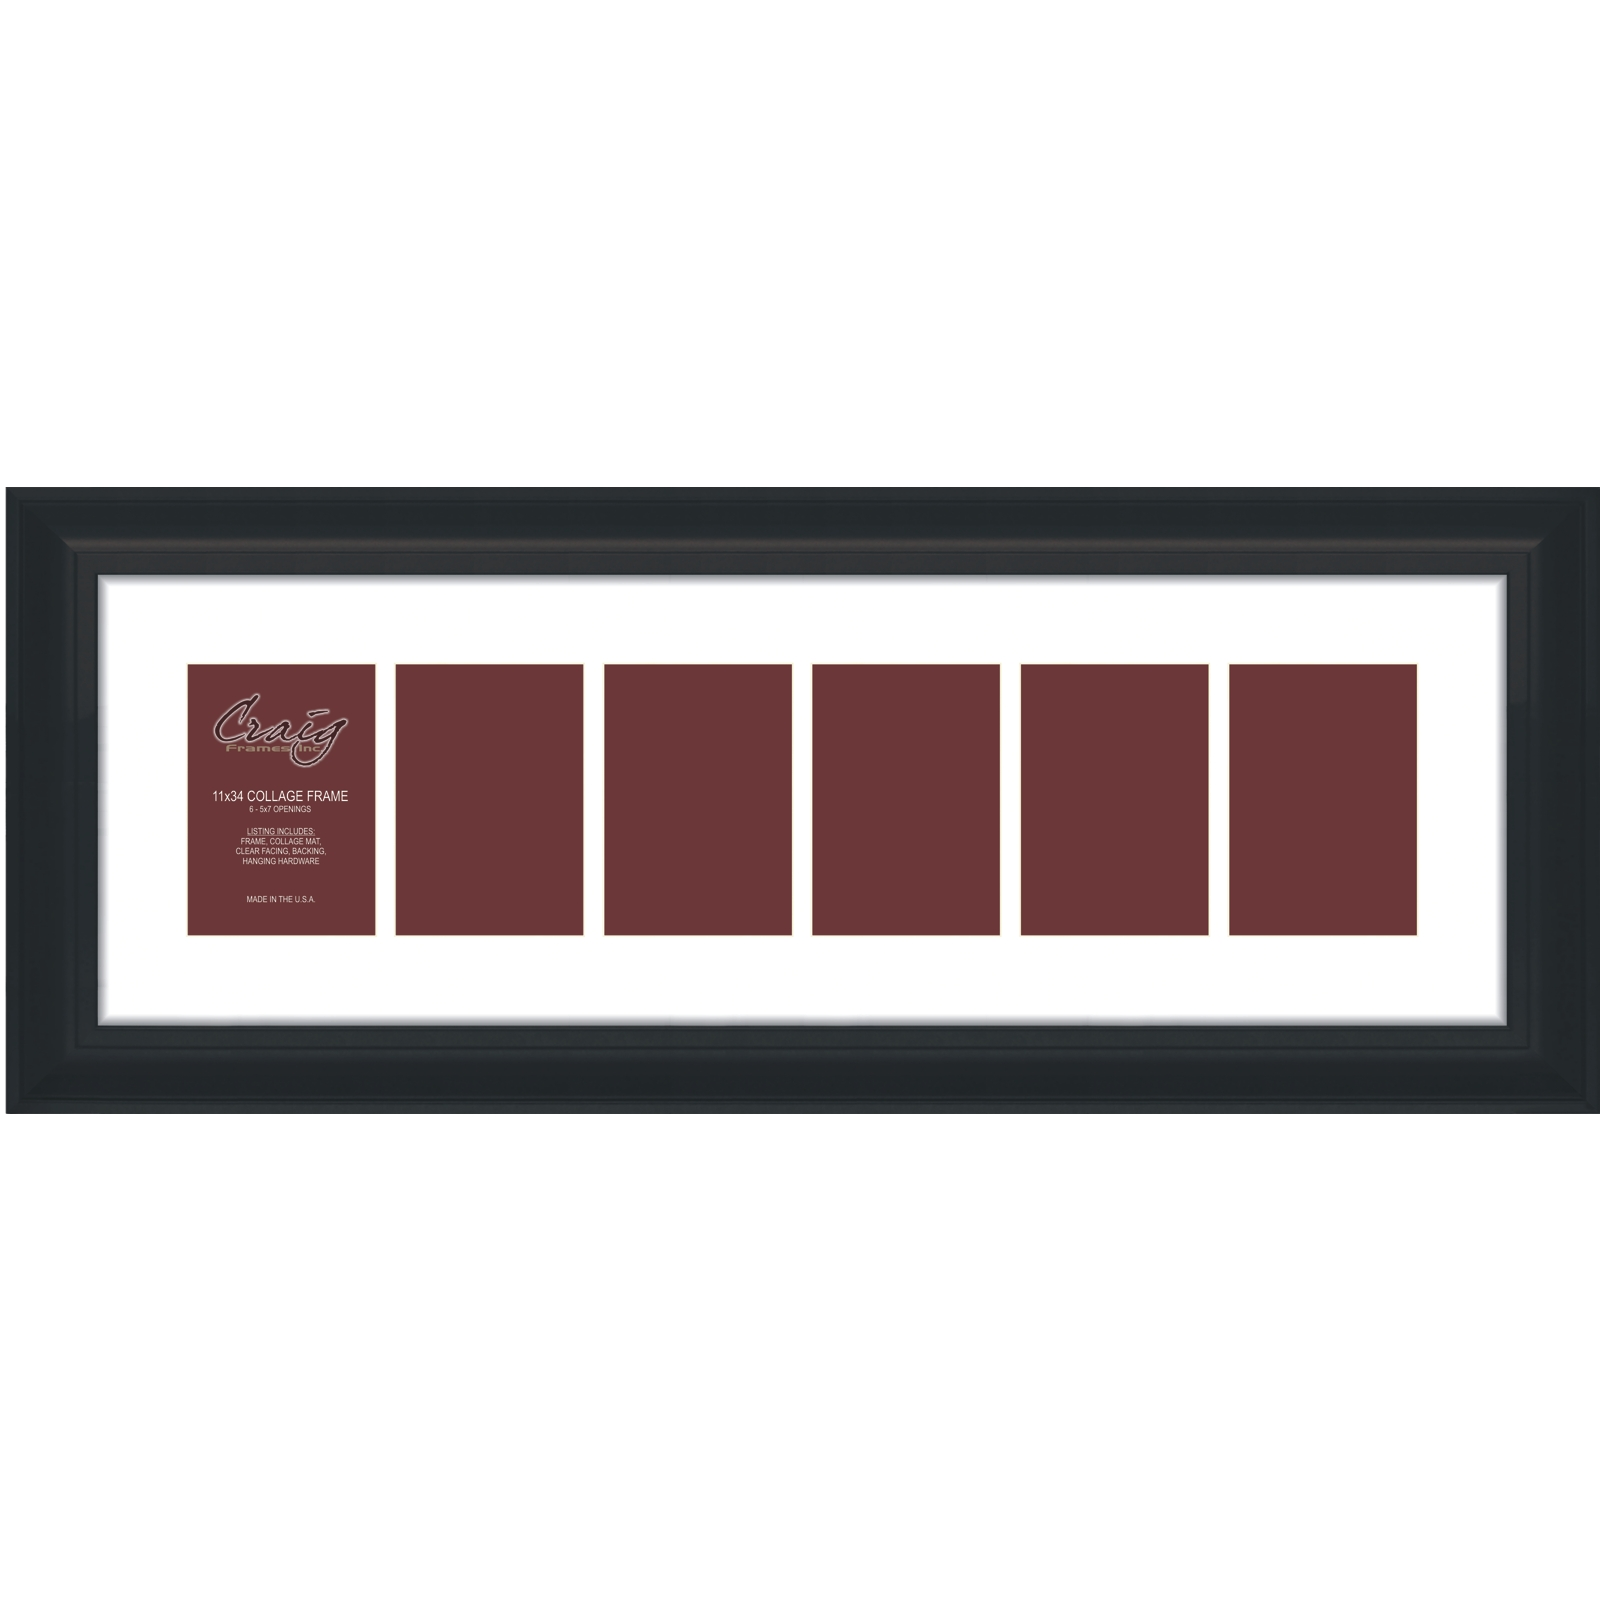 Craig Frames 11x34 2 Black Framed Collage Mat With 6 Openings For